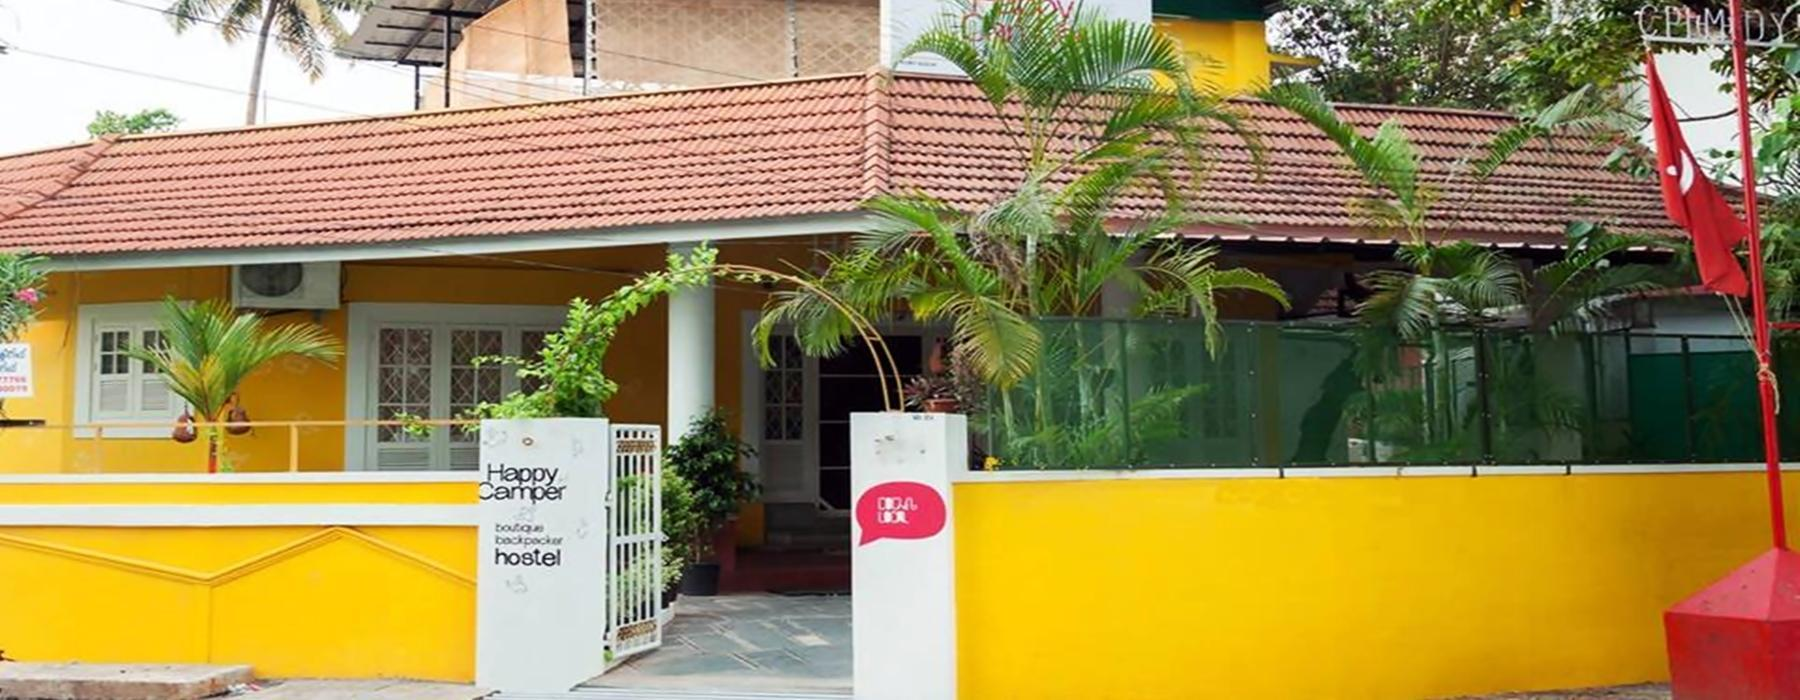 Backpacking Lodges in Kerala